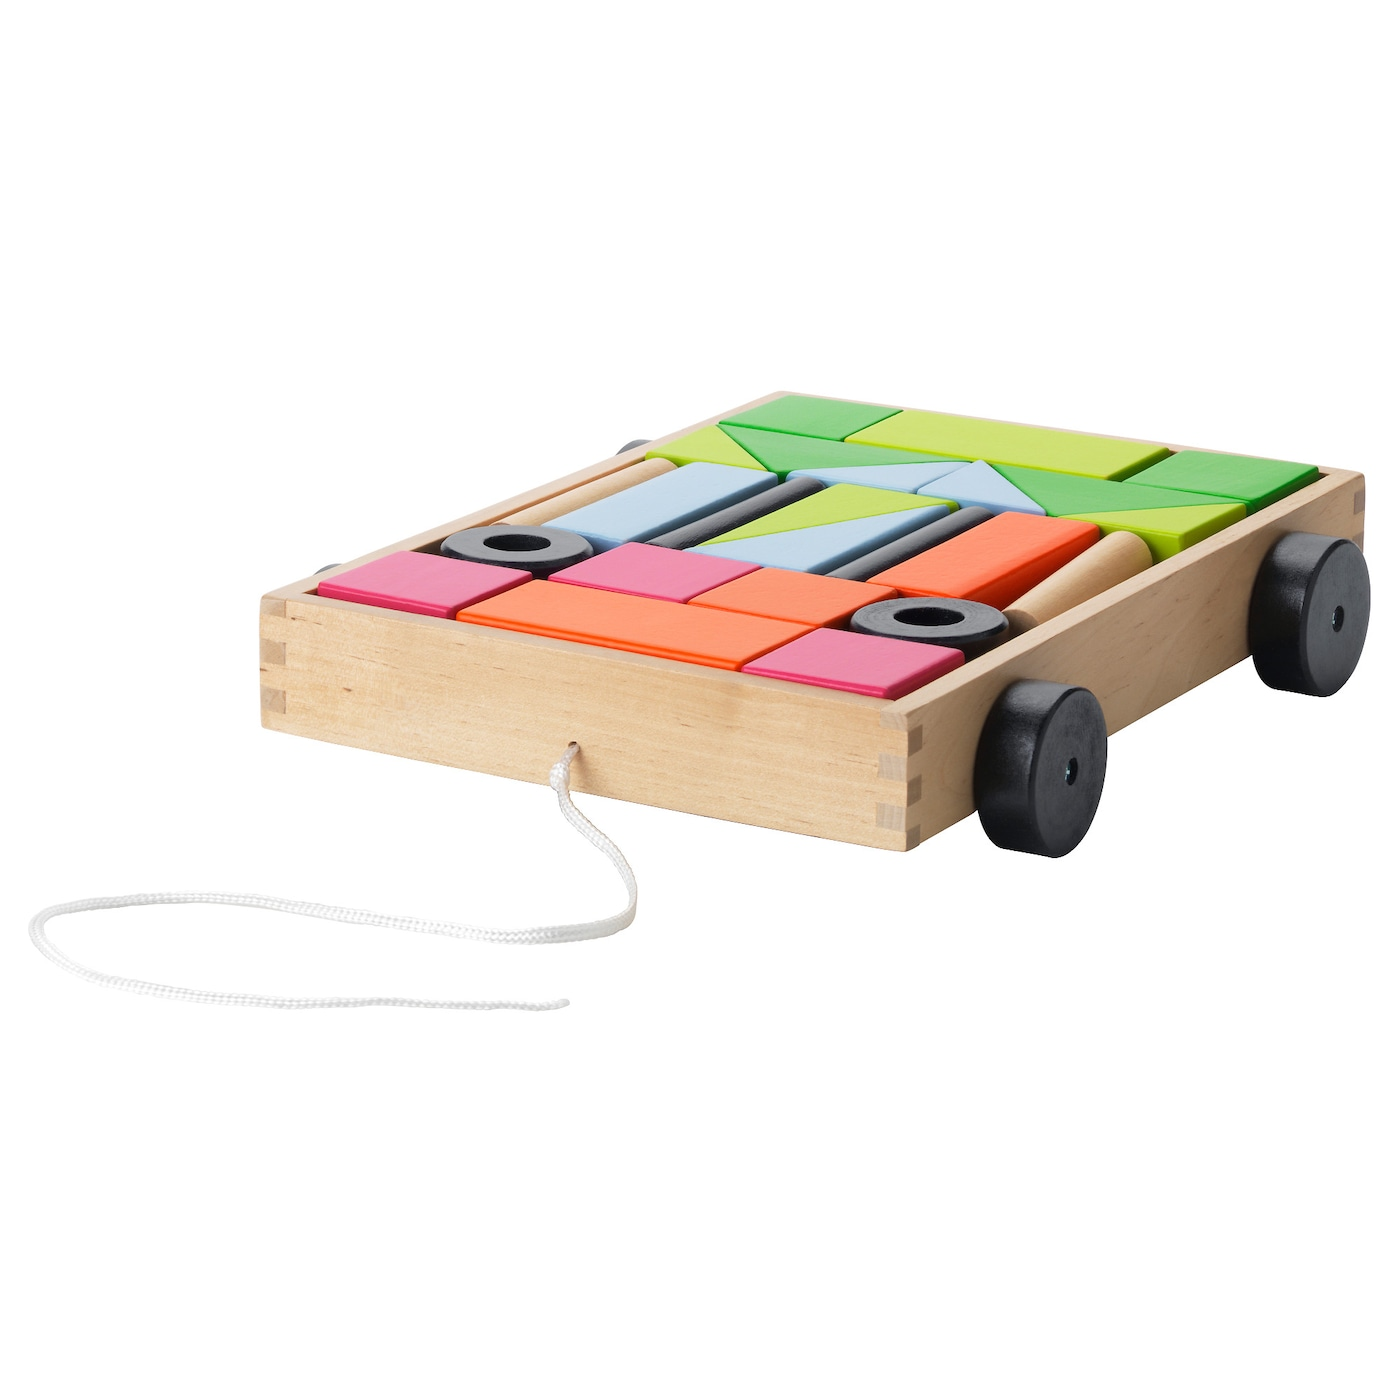 MULA 24 building blocks with wagon IKEA